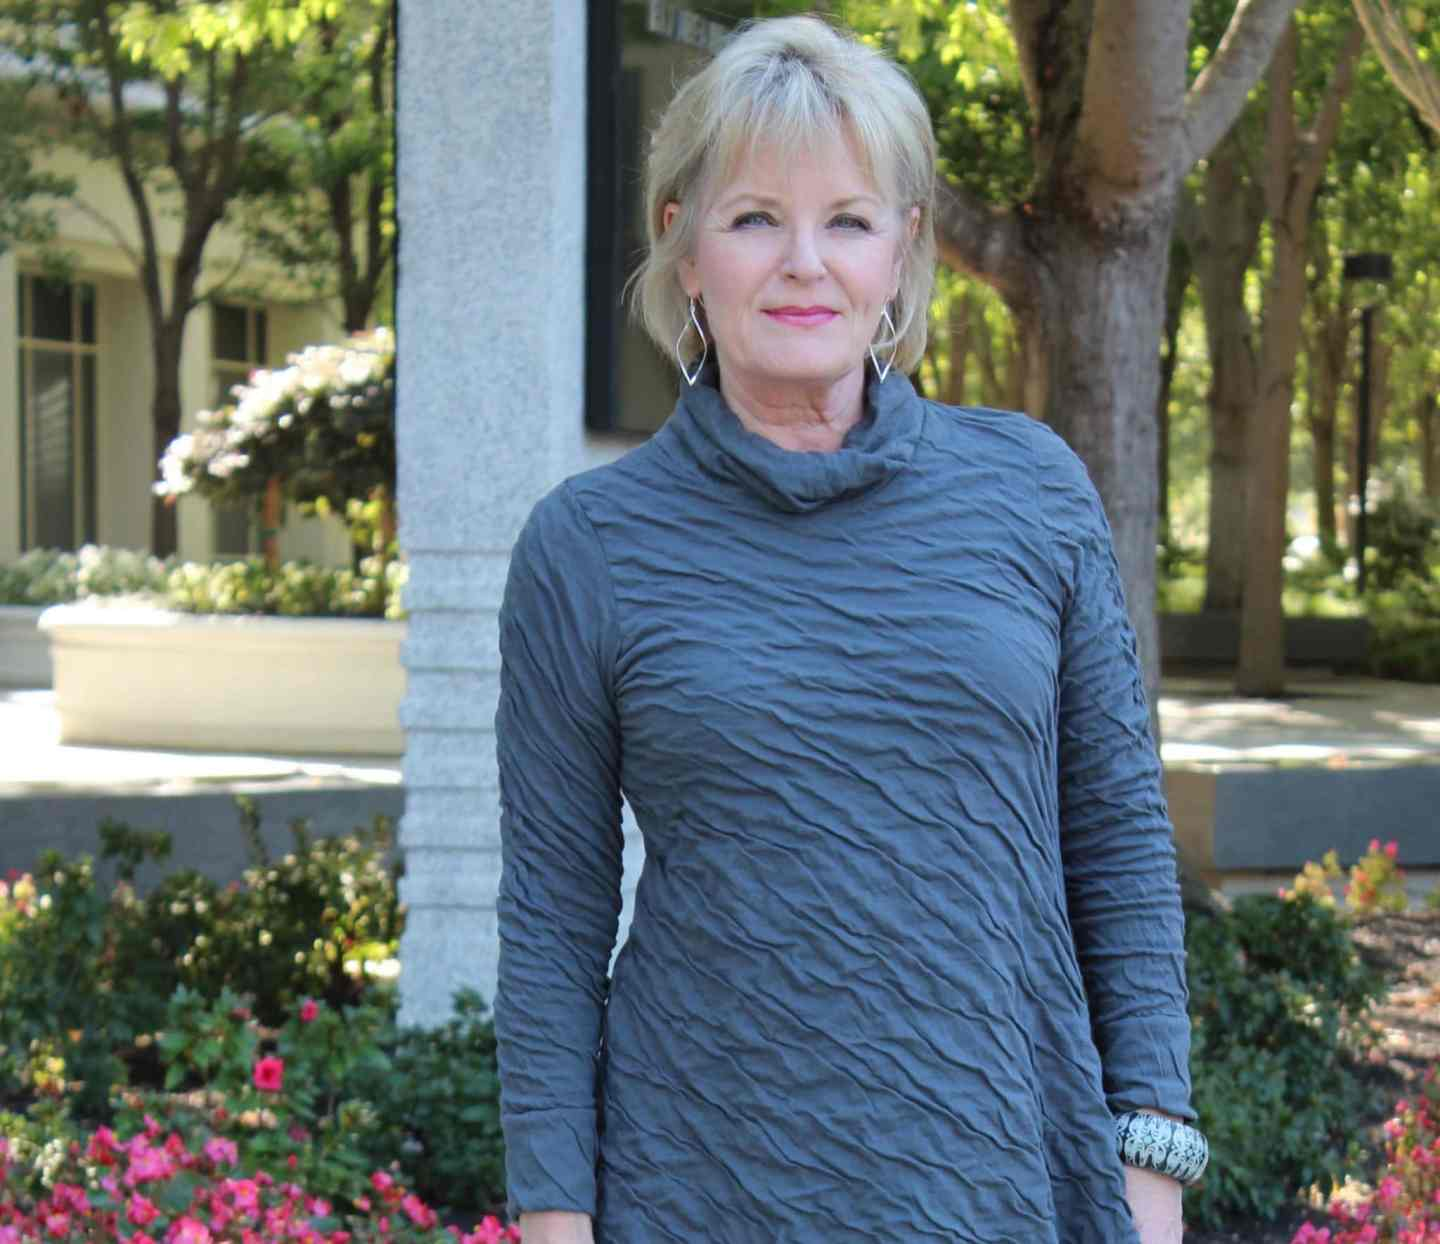 Jennifer Connolly of A Well Styled Life wearing a textured tunic which helps smooth the look of lines on your face